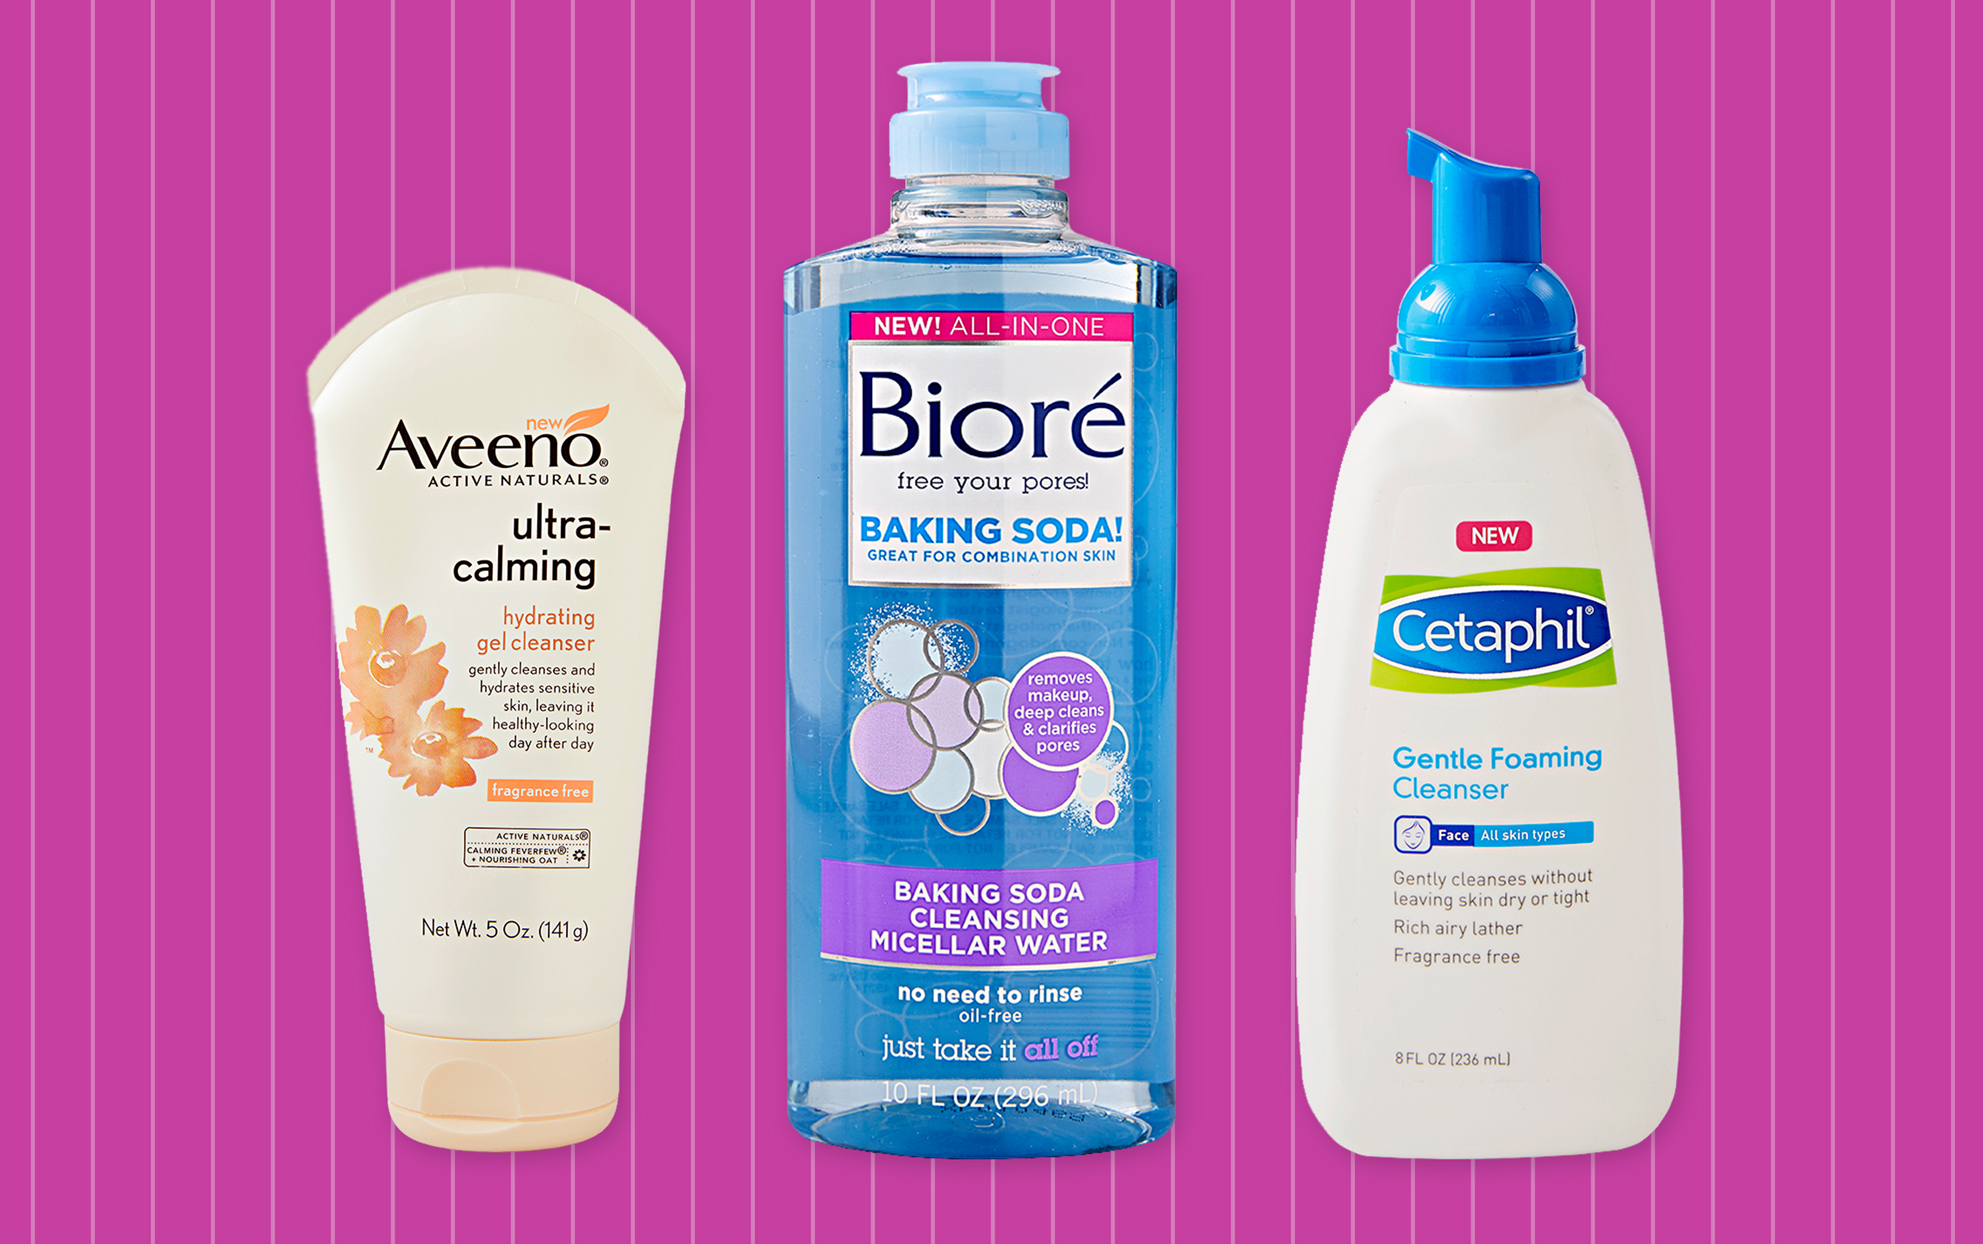 Aveeno, Bioré and Cetaphil cleansers on a purple background